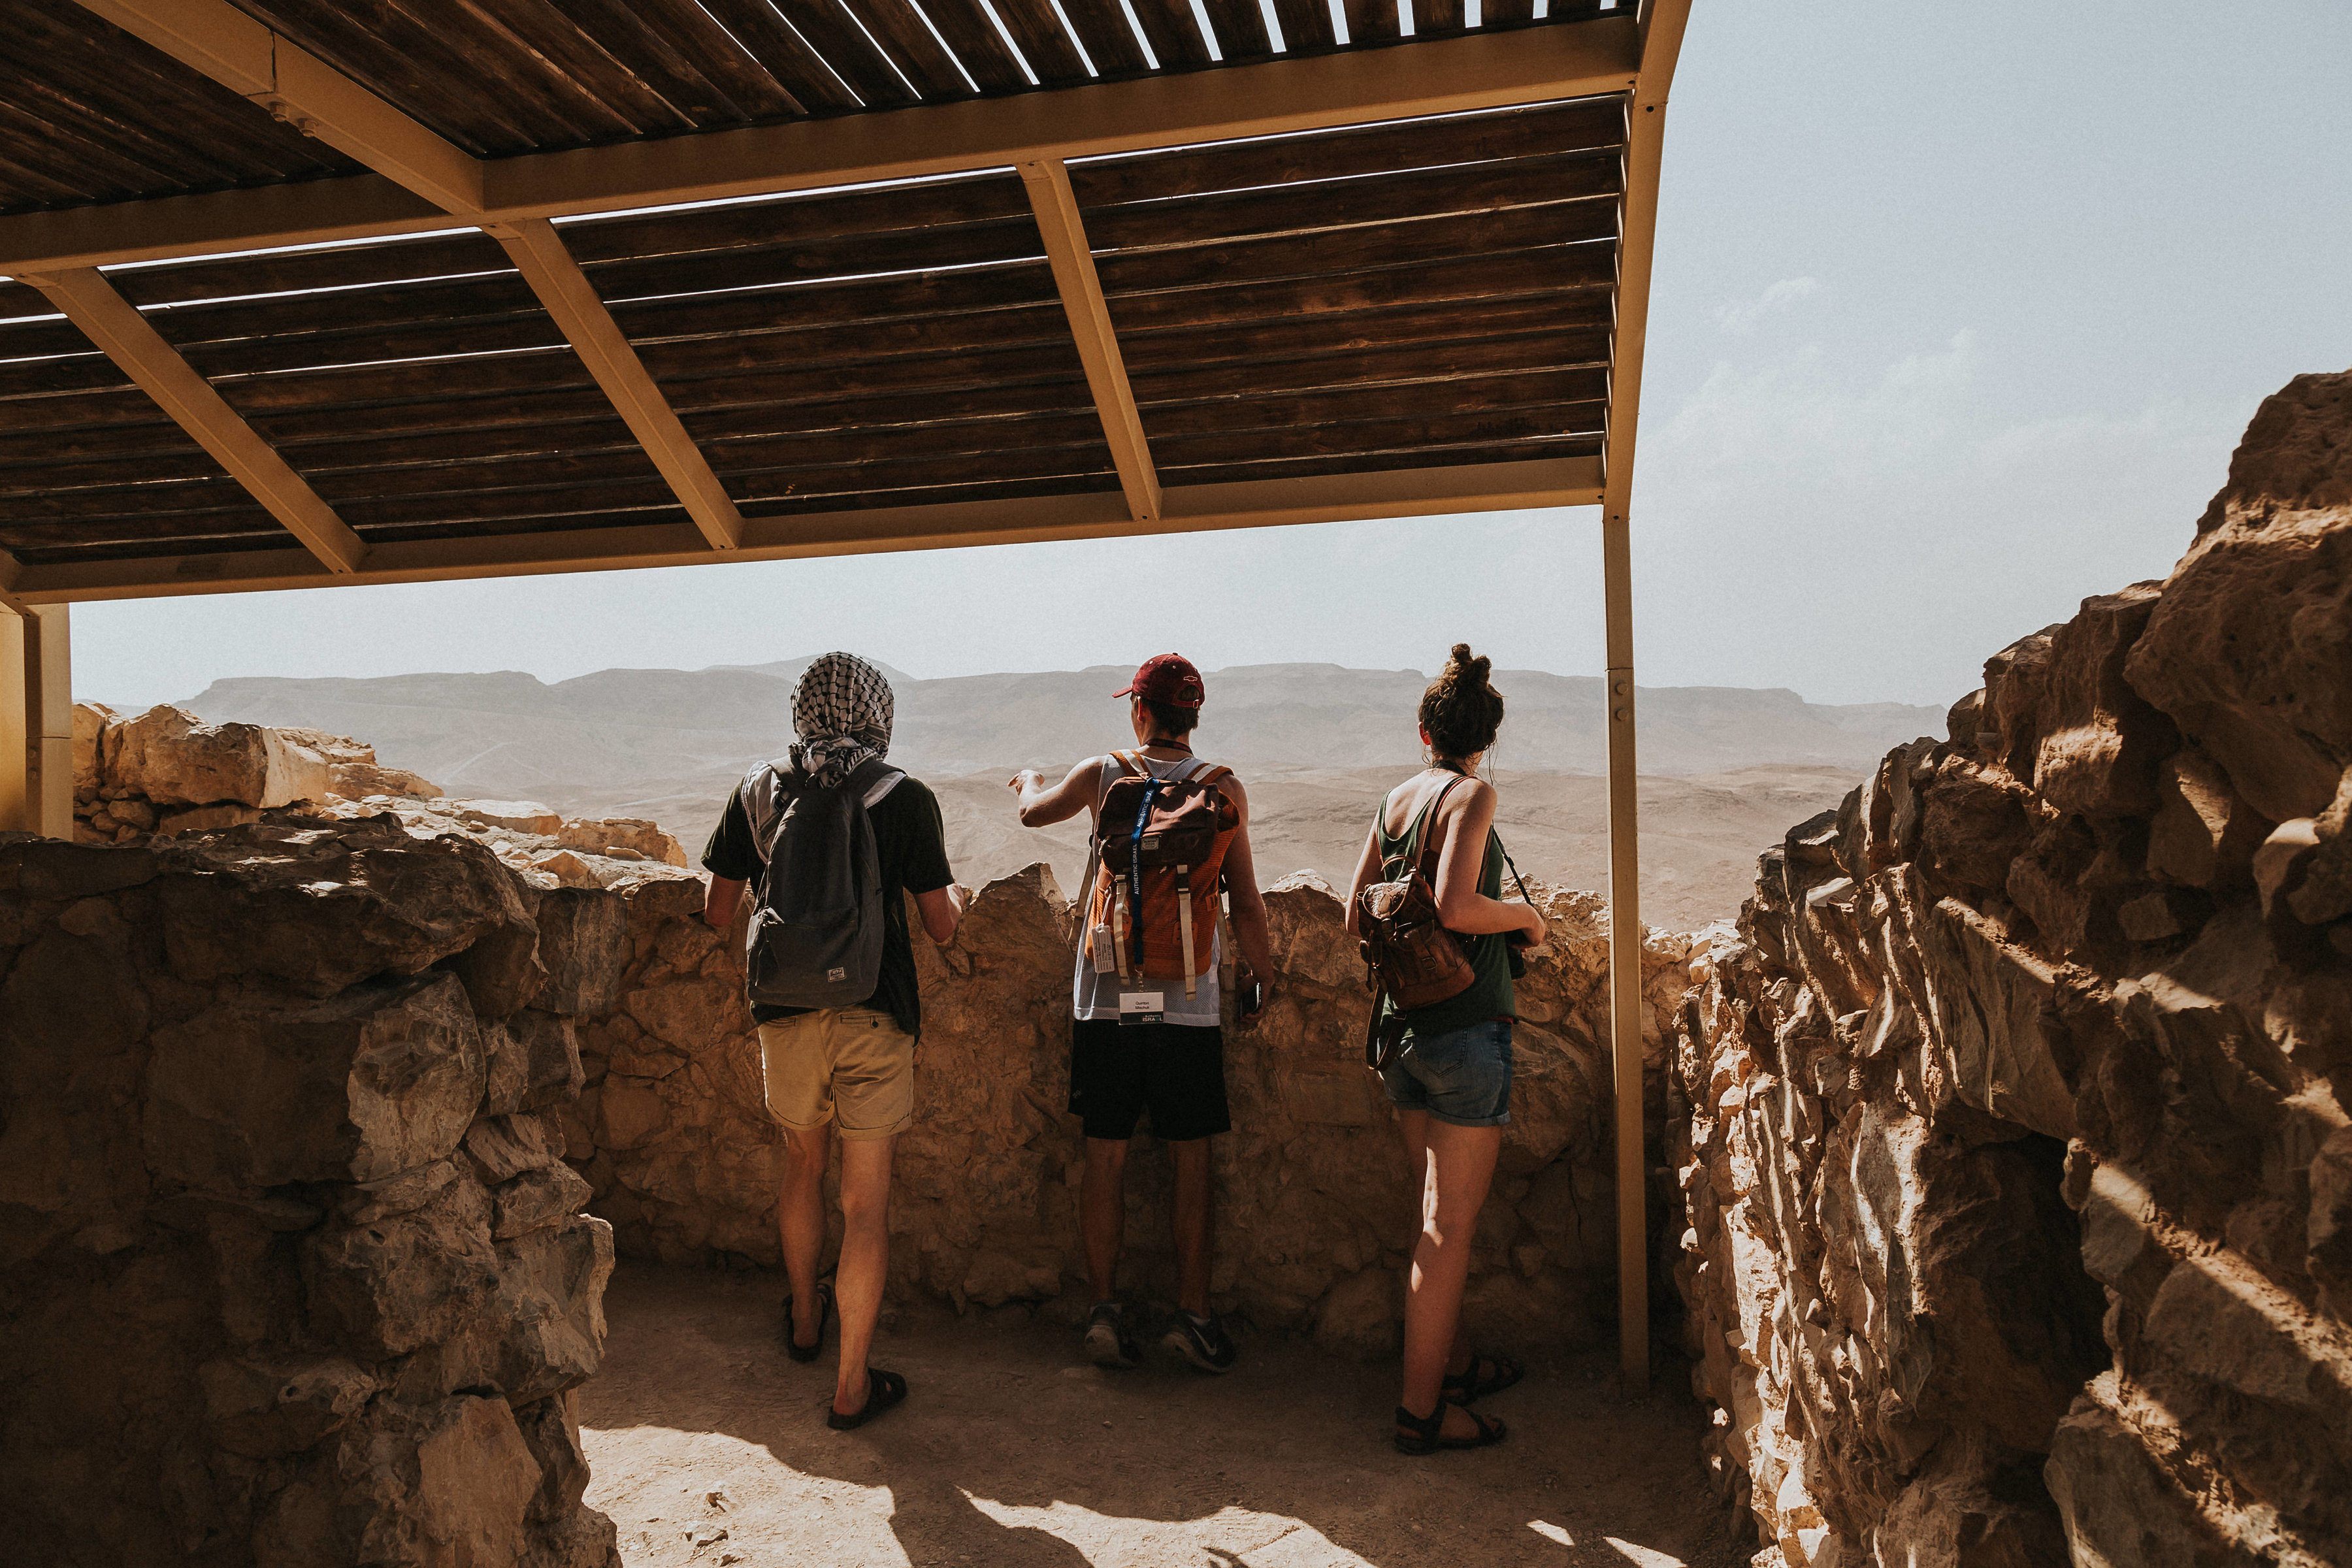 Looking out over the Judean desert atop Herod's Fortress of Masada, trying to picture the Roman camps below.